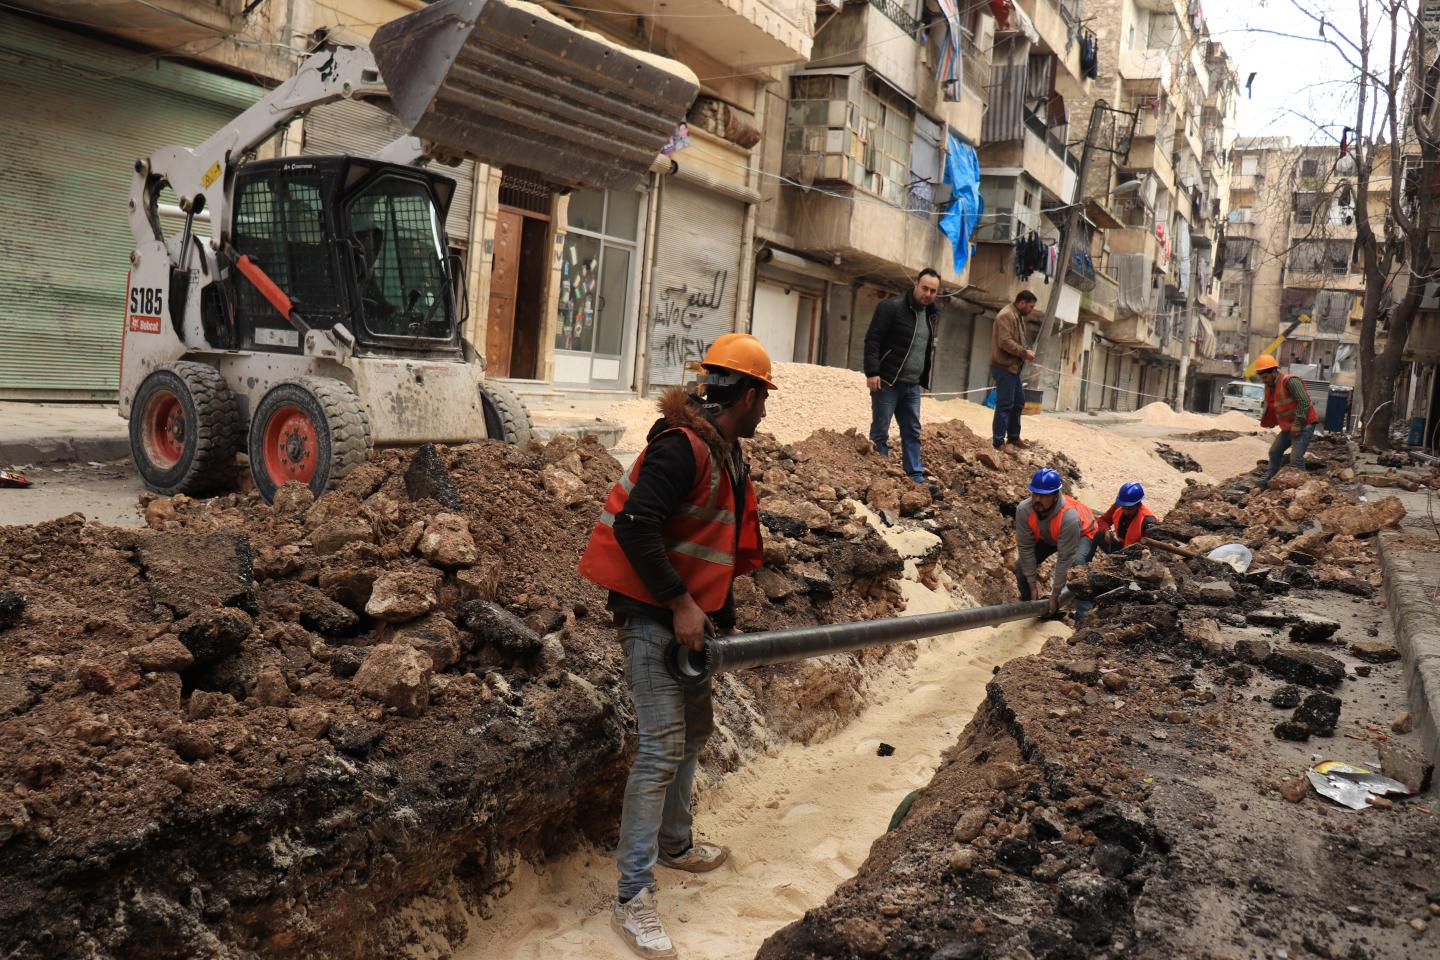 Children have improved access to safe drinking water in Aleppo thanks to UNICEF